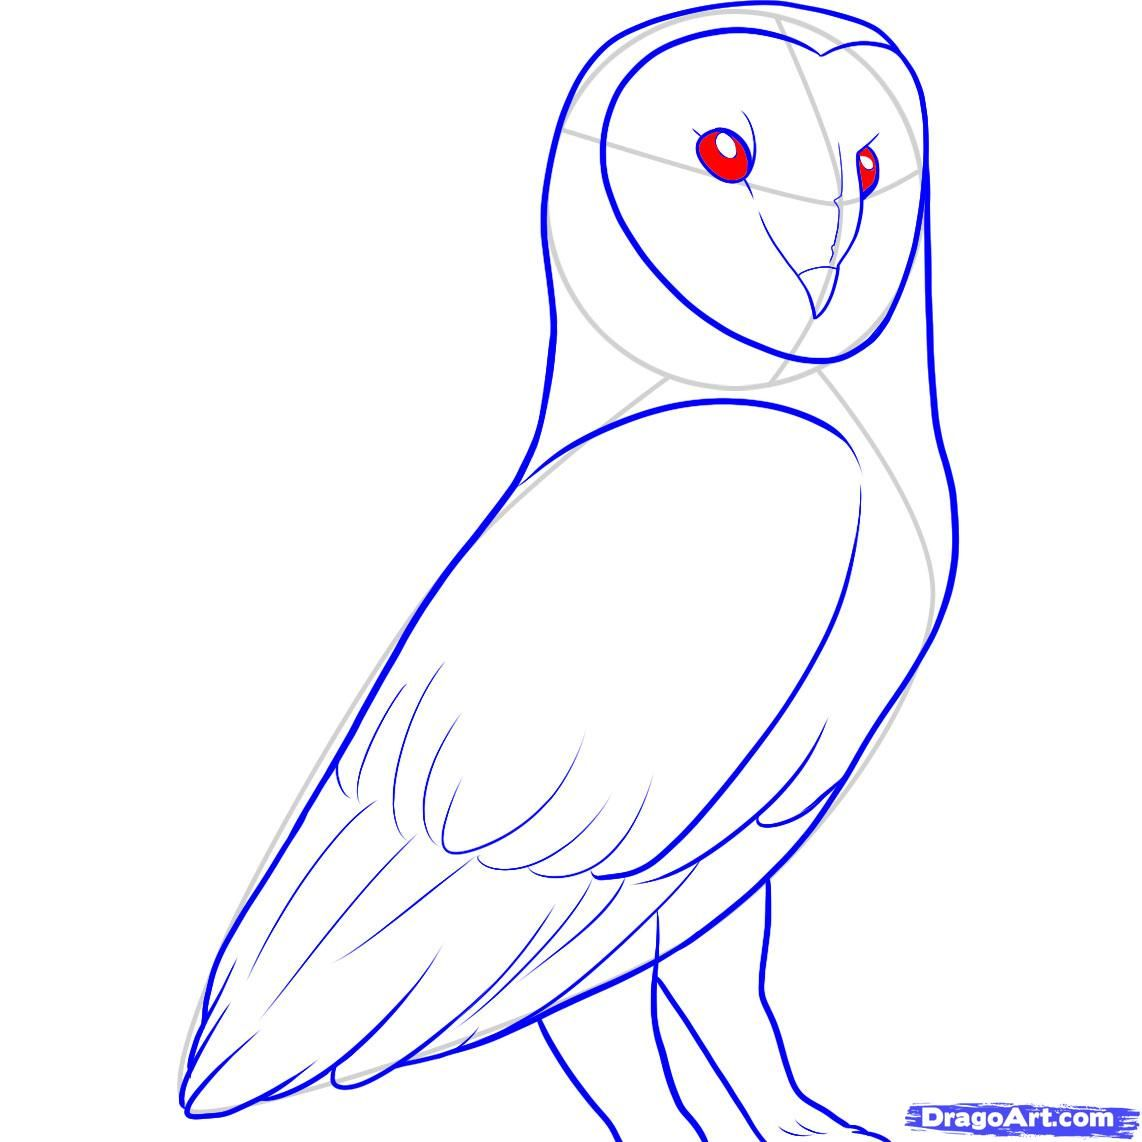 How to draw a barn owl step 10 arts in medicine for Steps to draw an owl